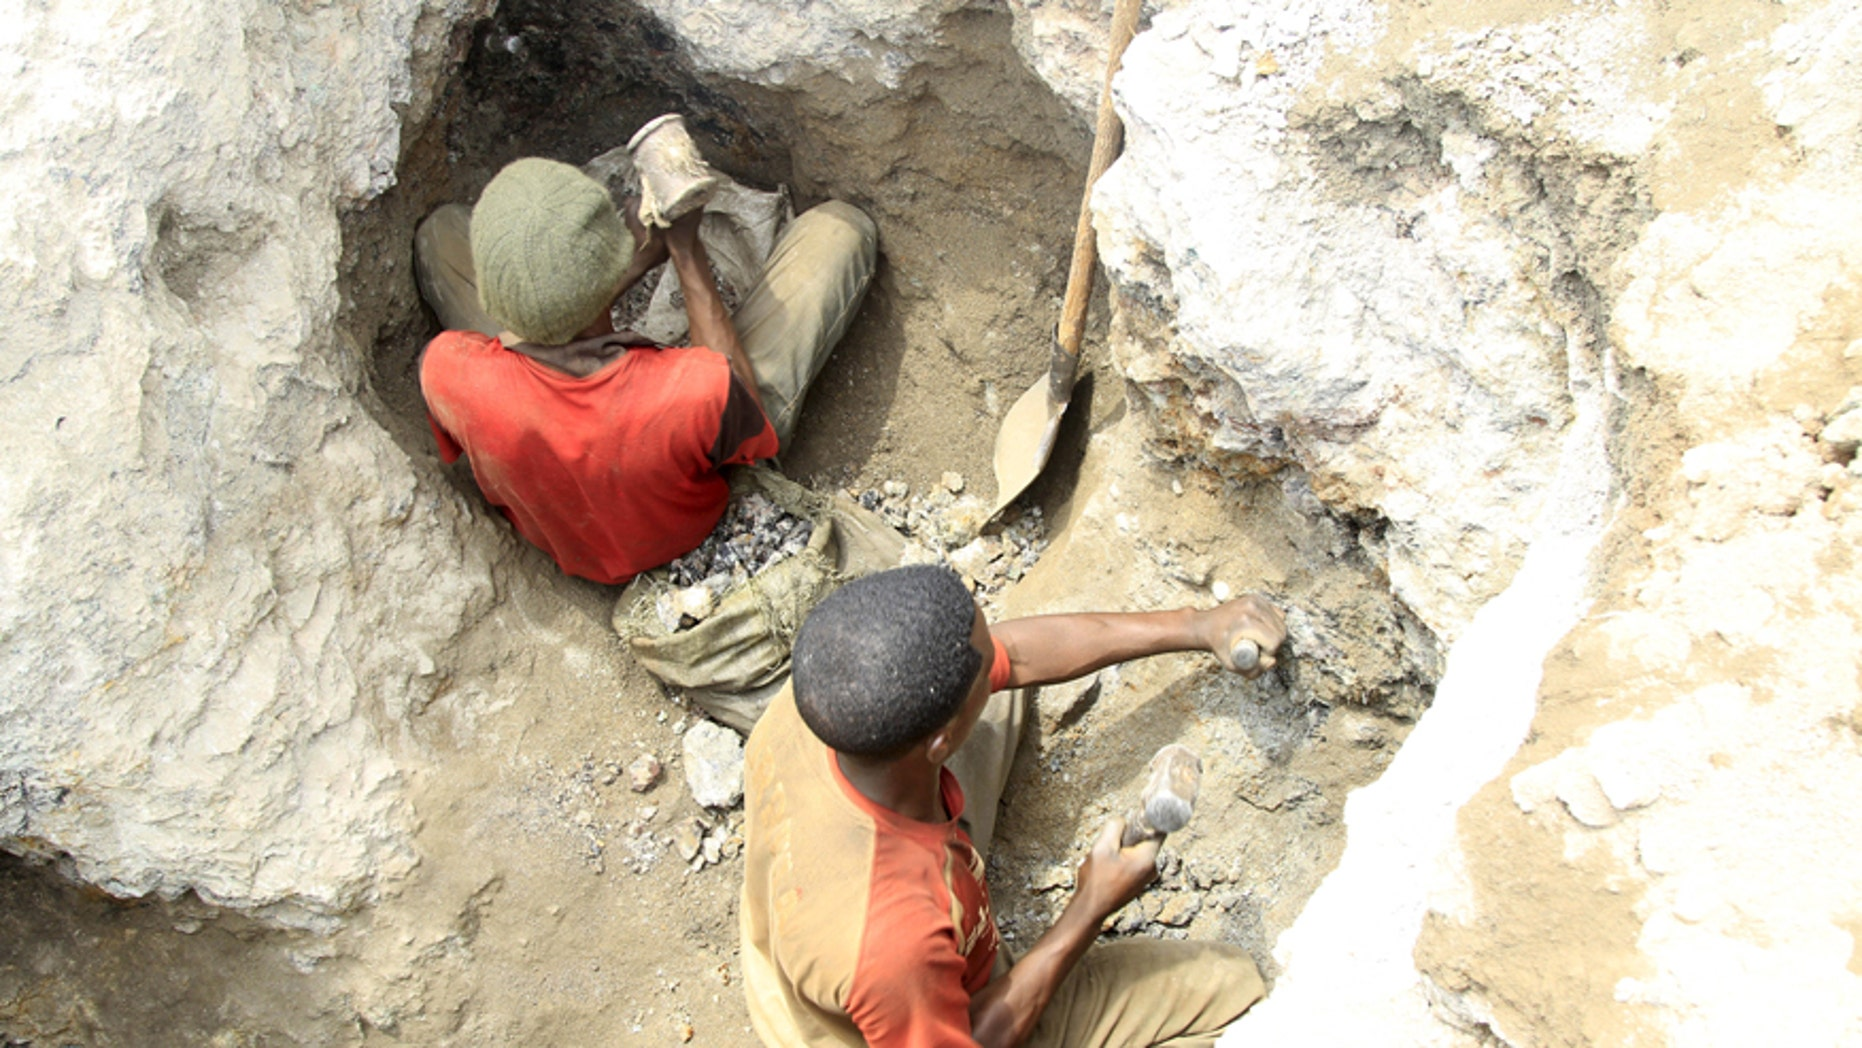 Nov. 25, 2015: A cobalt mine pit in Tulwizembe, Katanga province, Democratic Republic of the Congo.